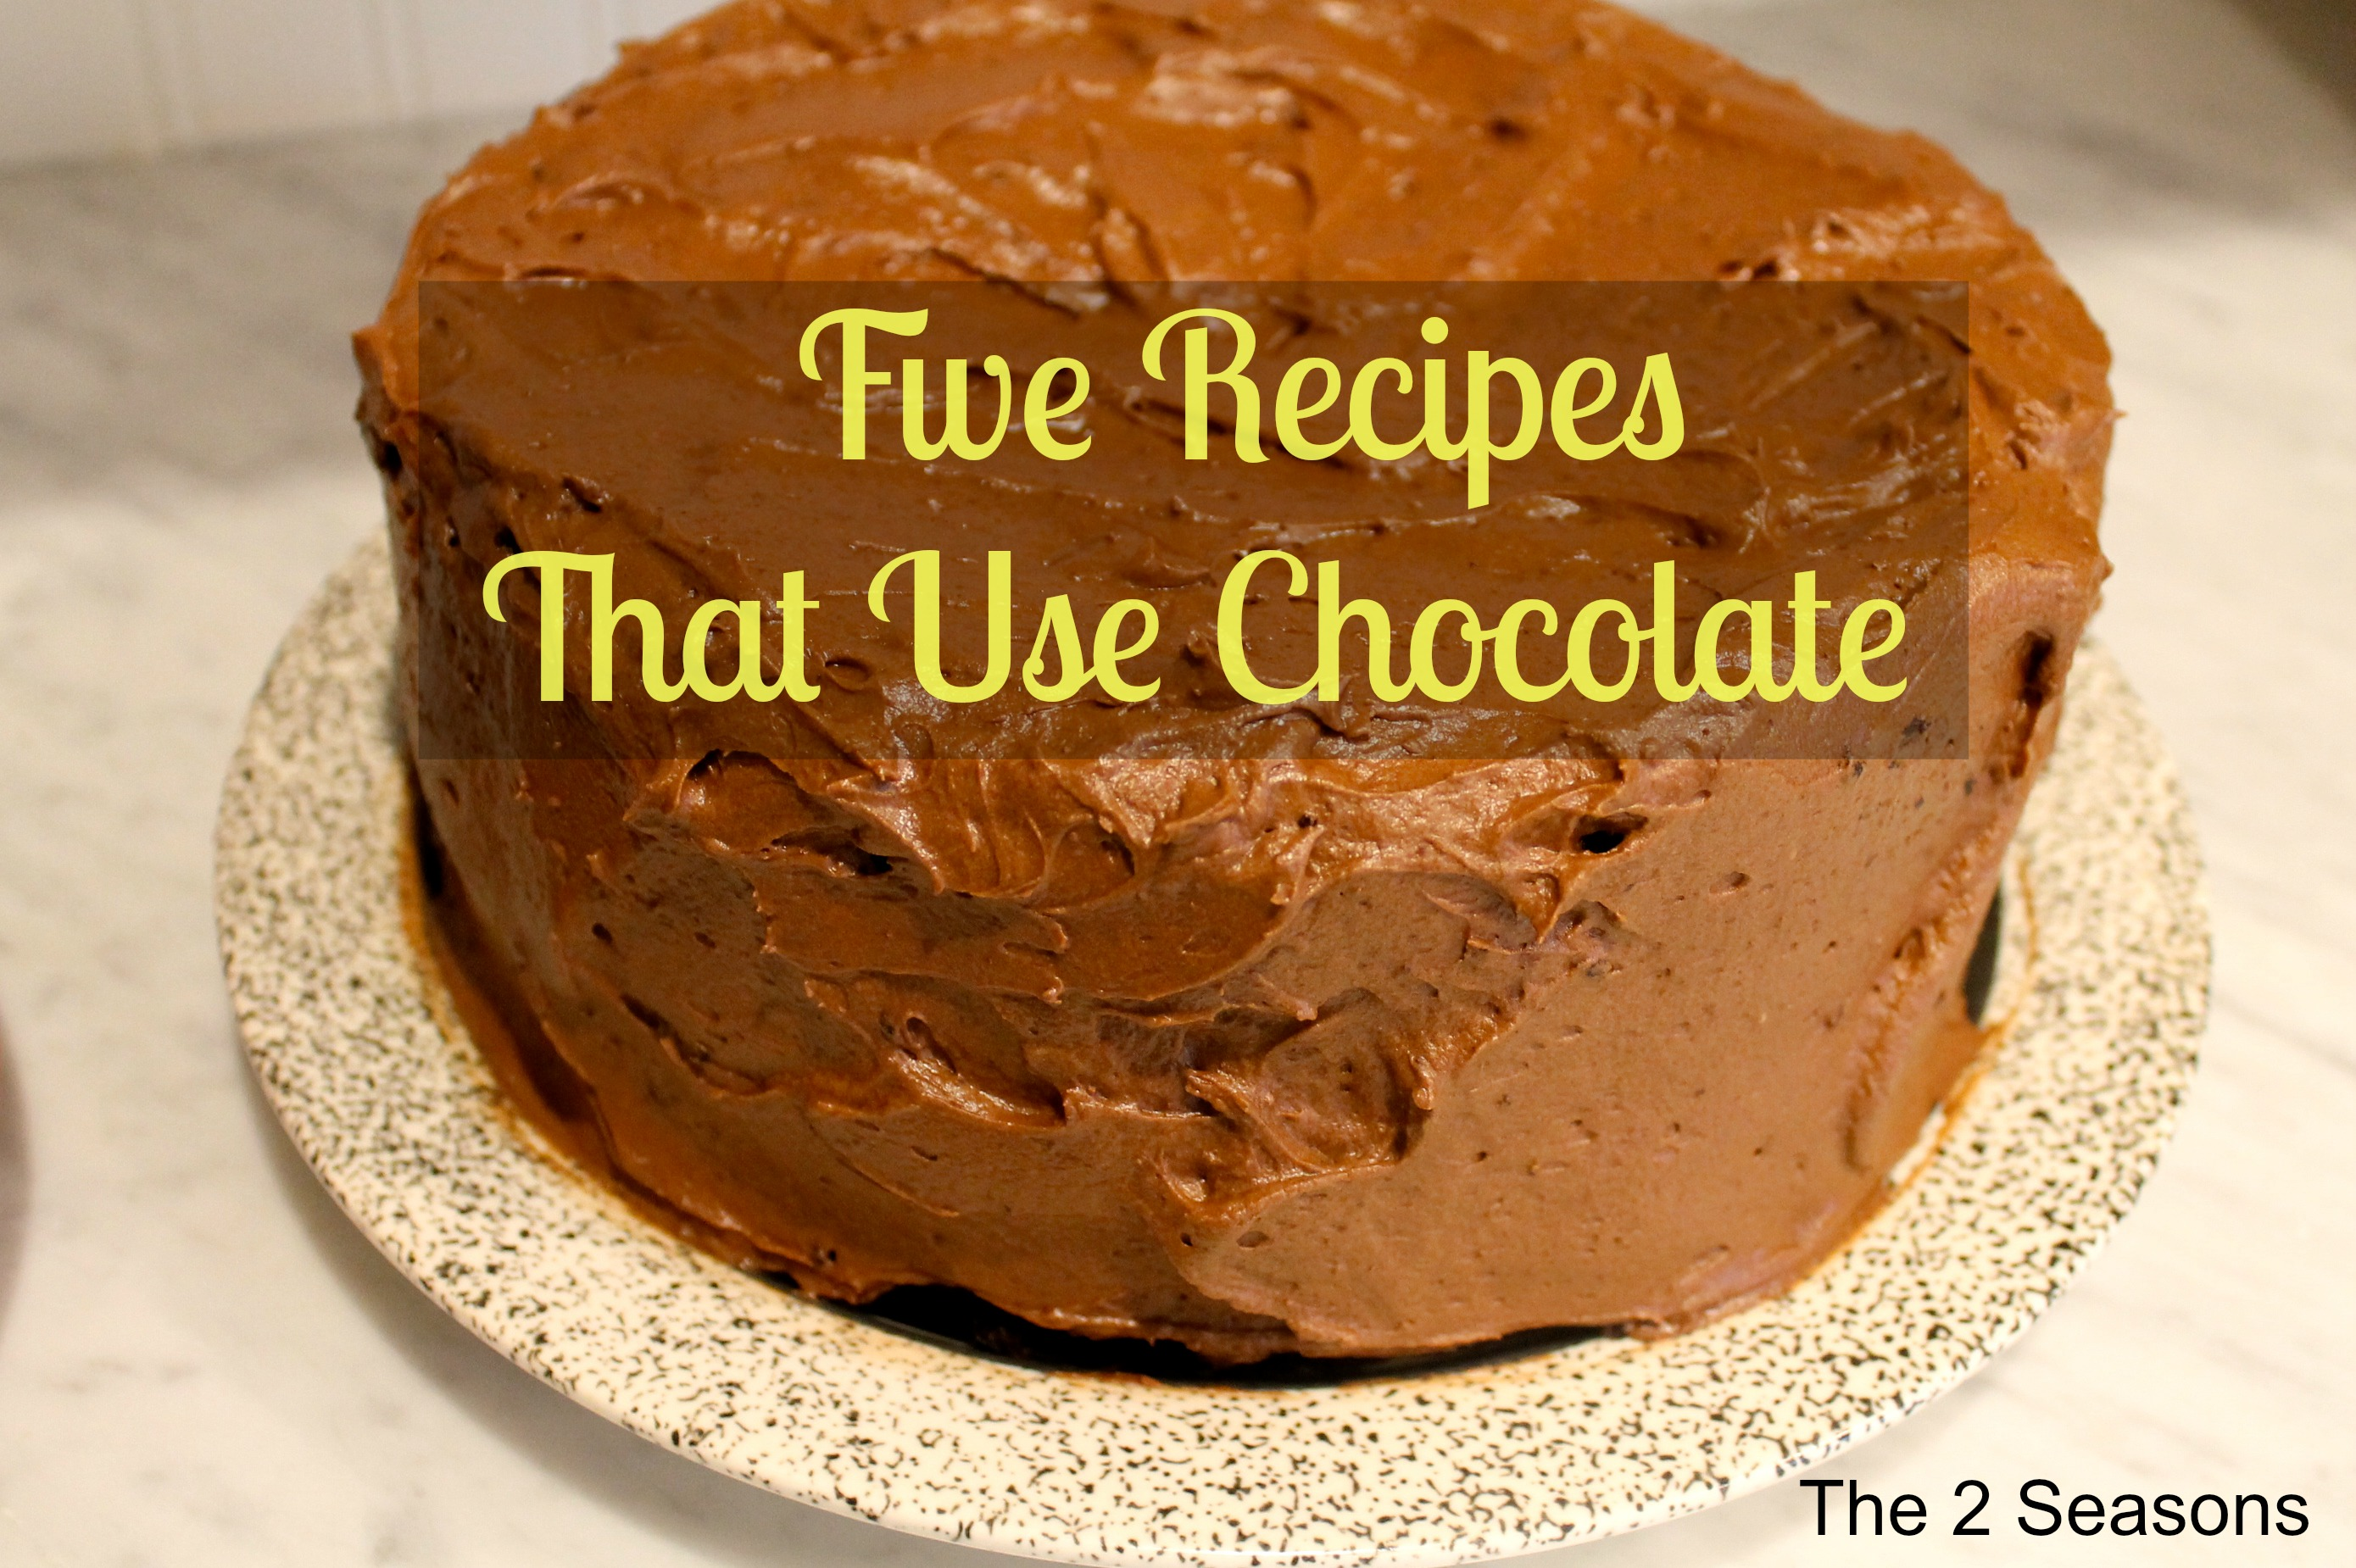 Chocolate Recipes2 - Five Recipes That Use Chocolate